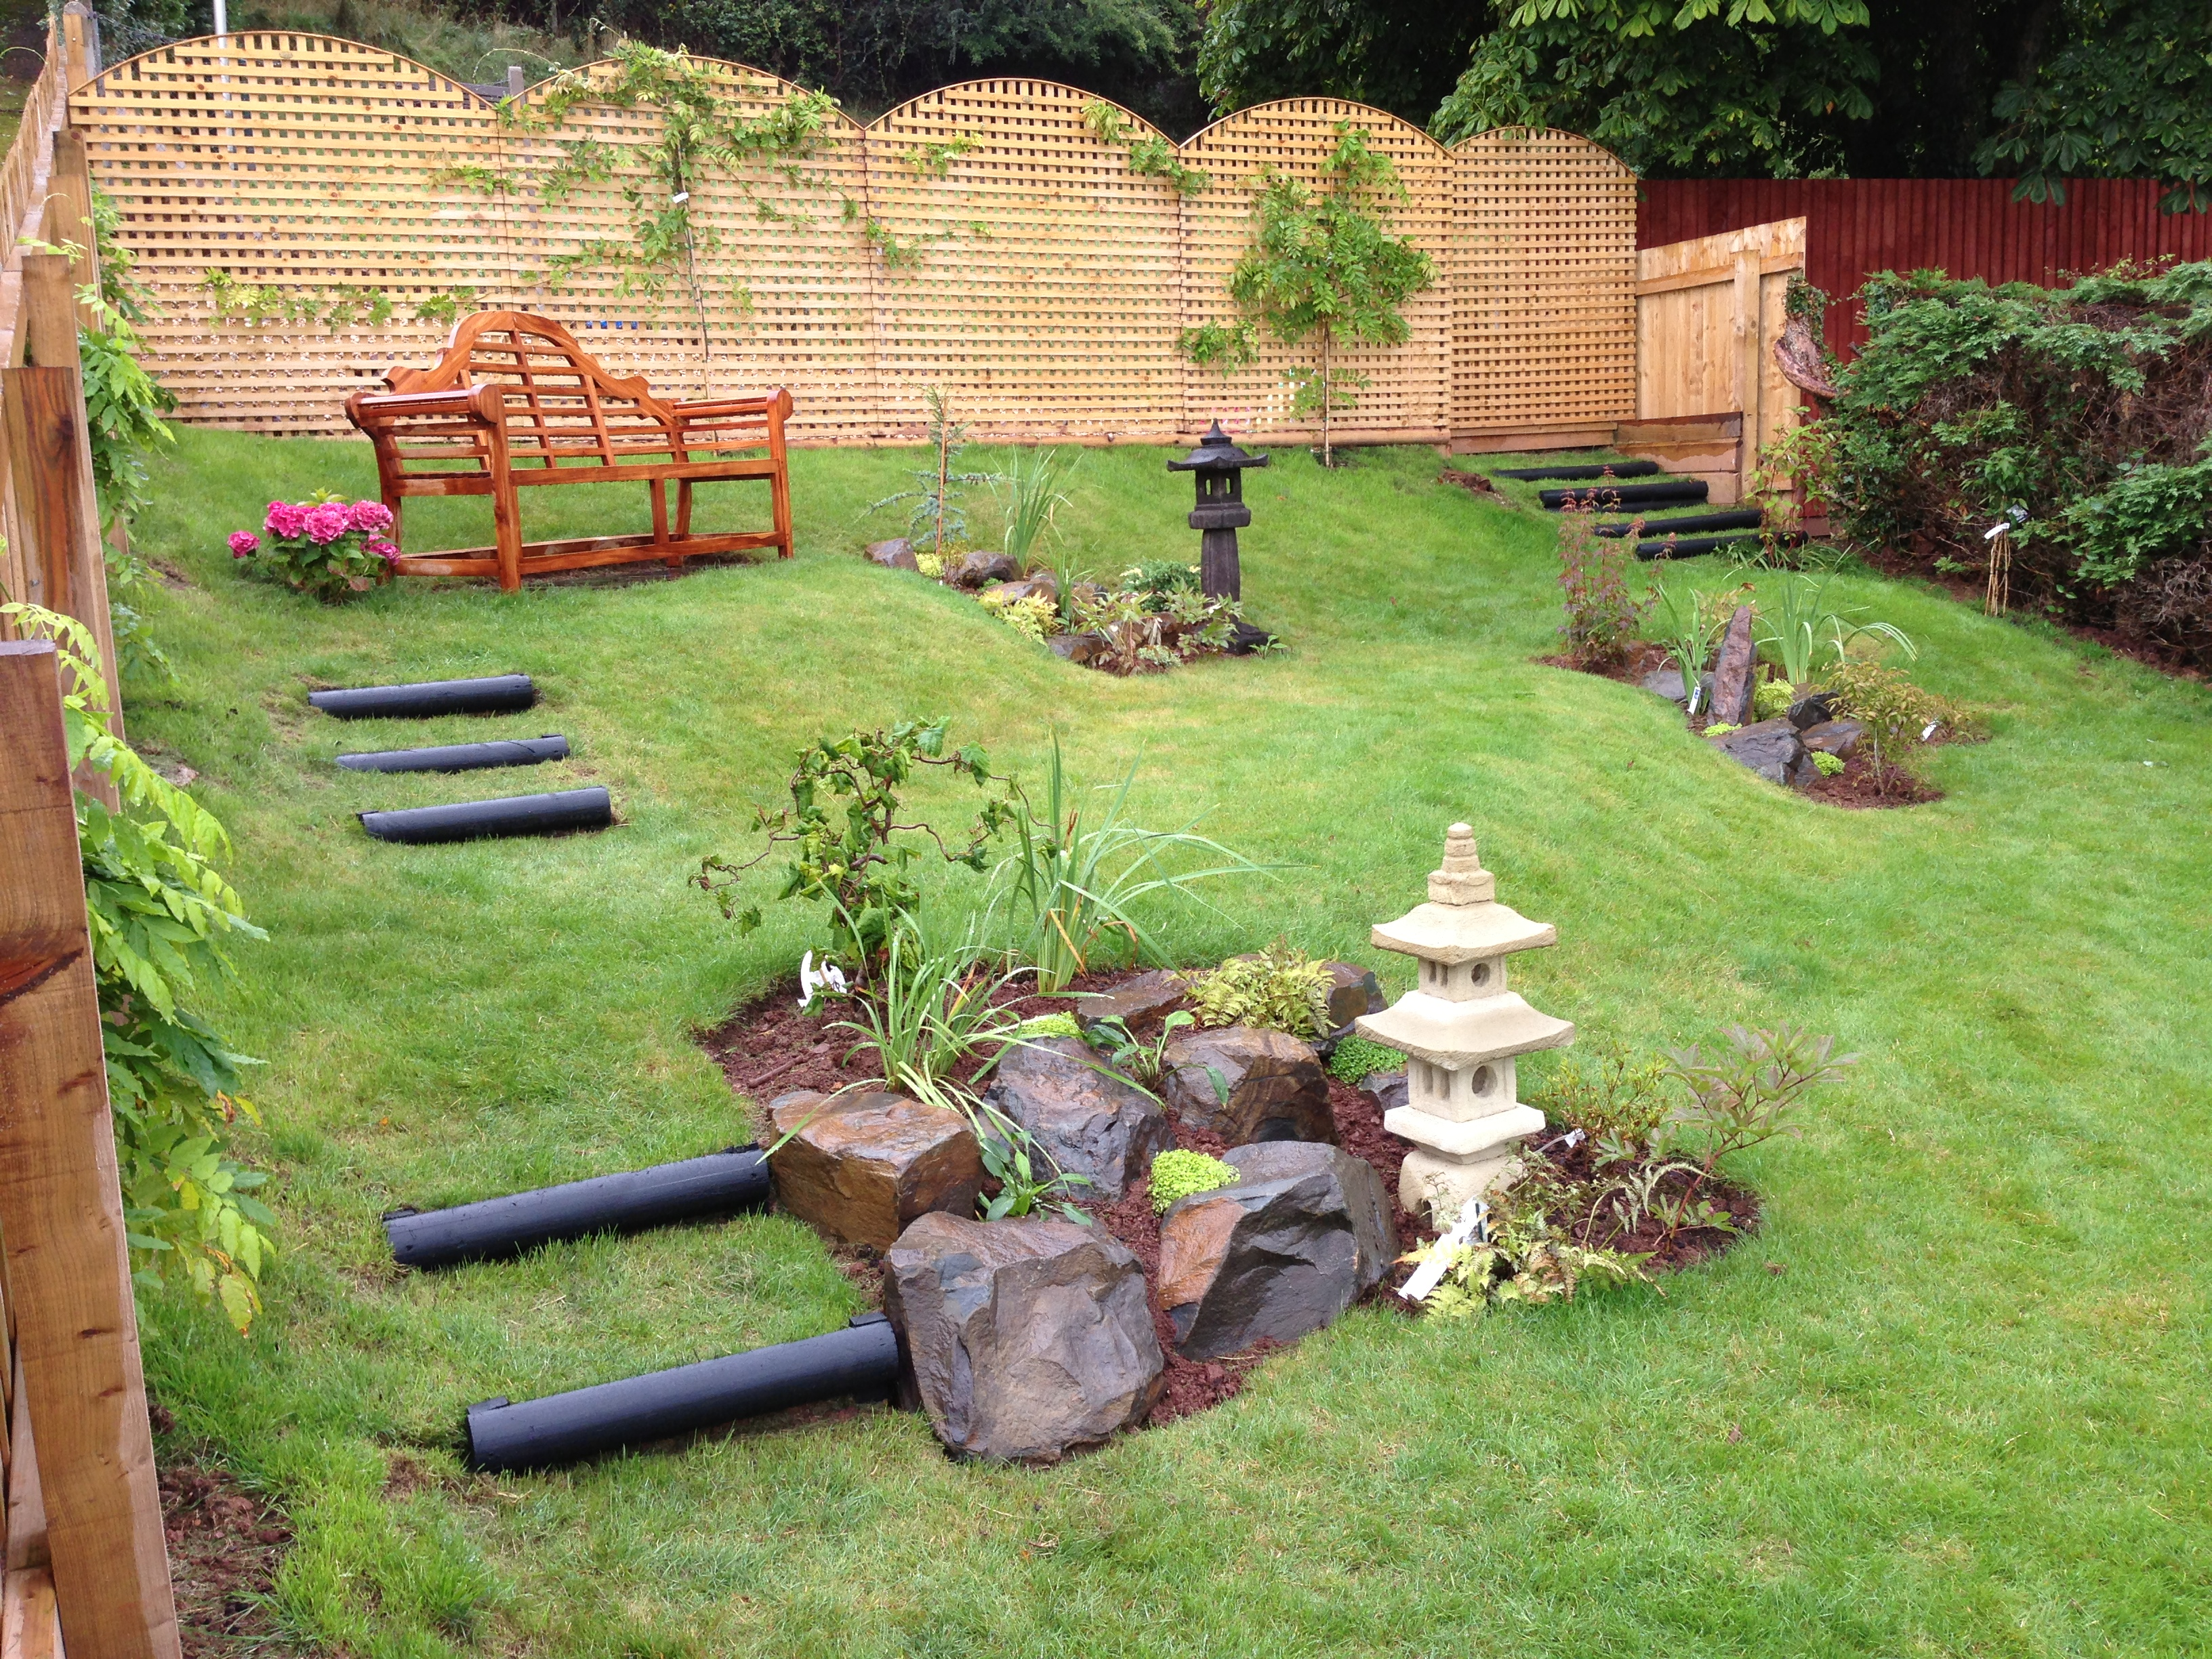 Exeter japanese garden designer plant a seed garden design for Home garden design uk